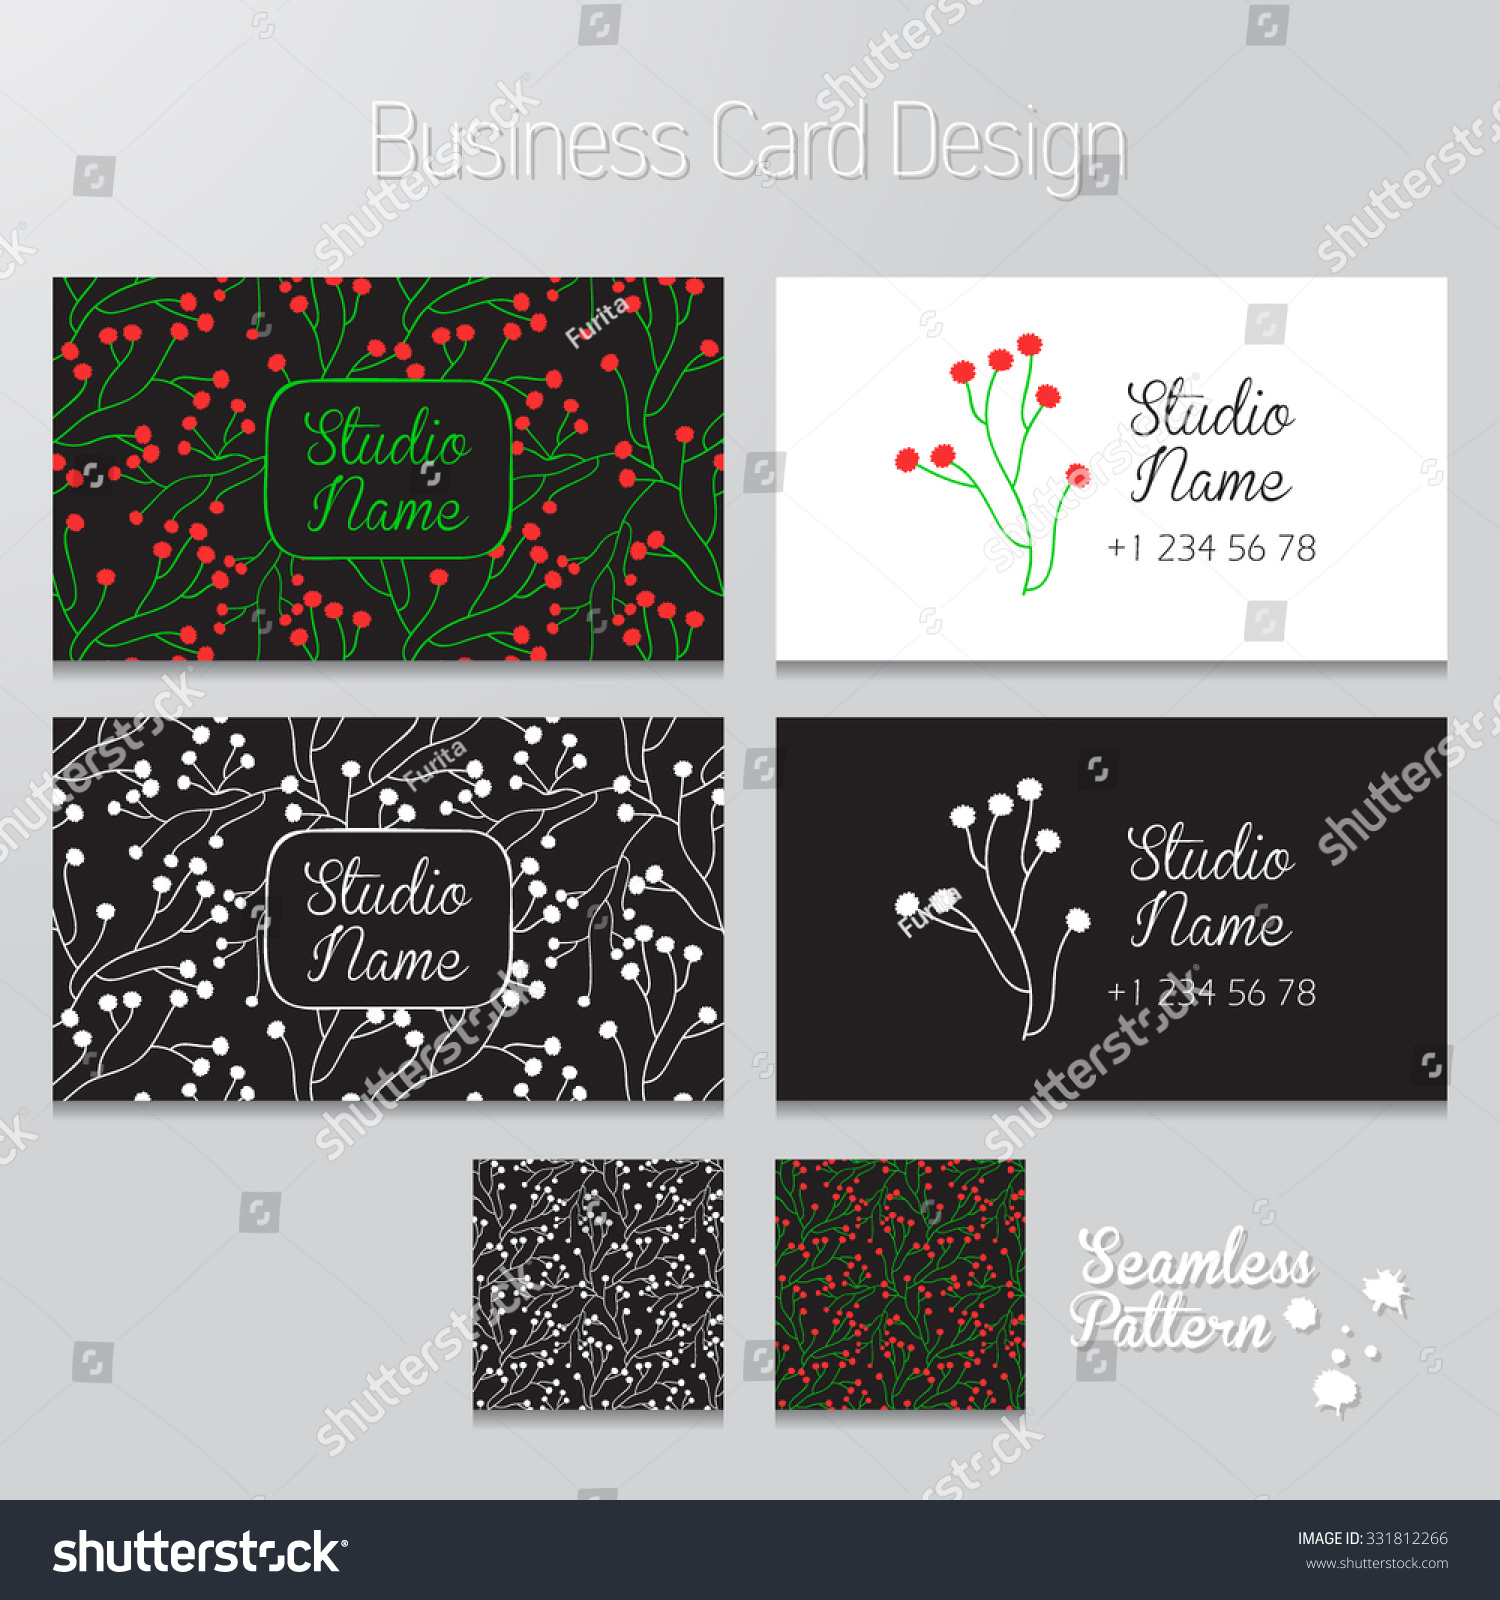 Business Card Design Vector Floral Pattern Stock Vector 331812266